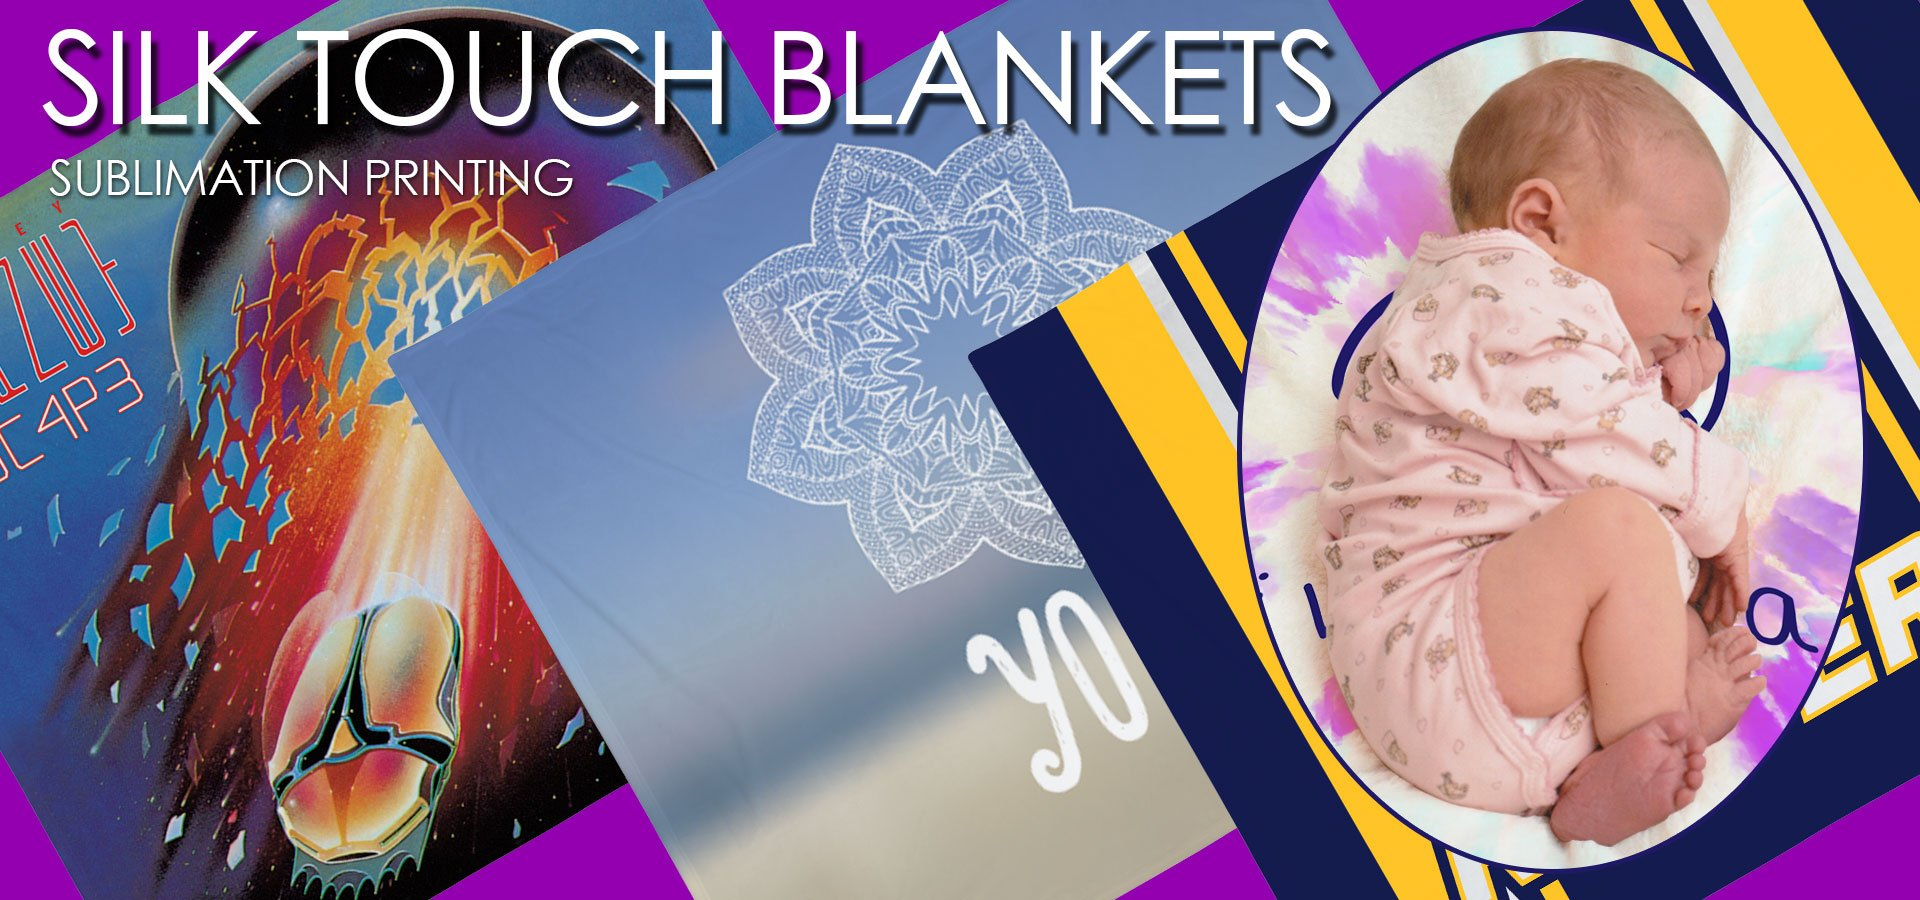 Best Printed Blankets in the U.S.